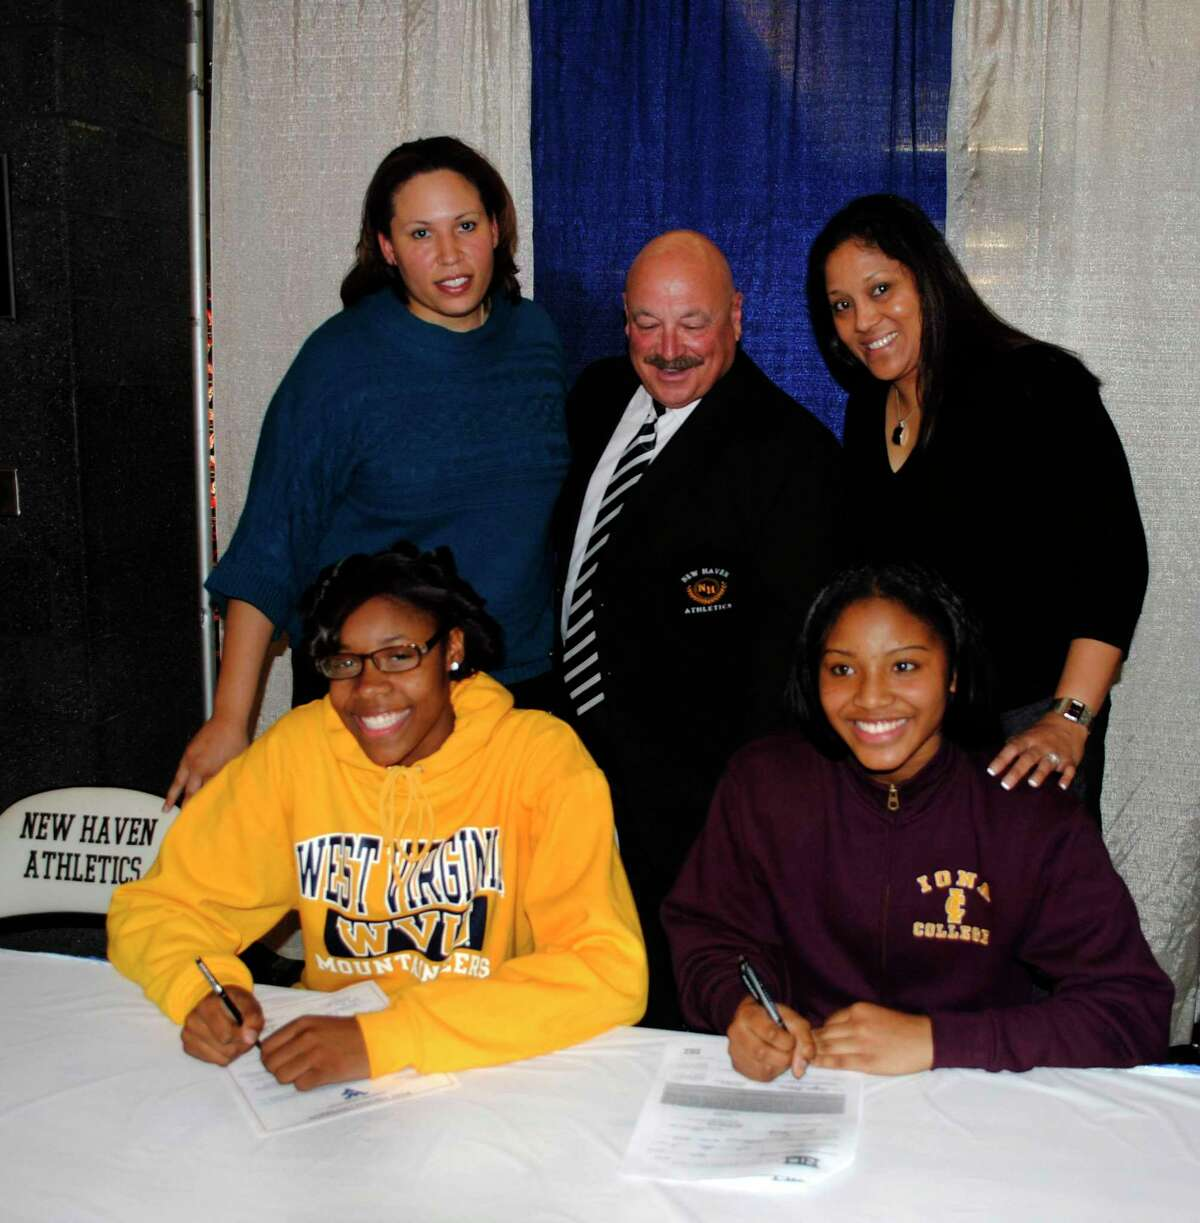 Hillhouse Girls Basketball Coach Catrina Hawley-Stewart, Supervisor of athletics and physical education Joseph Canzanella, and Wilbur Cross' Girls Basketball Coach Michelle Cabaldon watch as Bria Holmes (L) and Aaliyah Robinson sign their letters of intnet to play next year at West Virginia University and Iona College. 11/16/11 Kaitlin Bradshaw photo